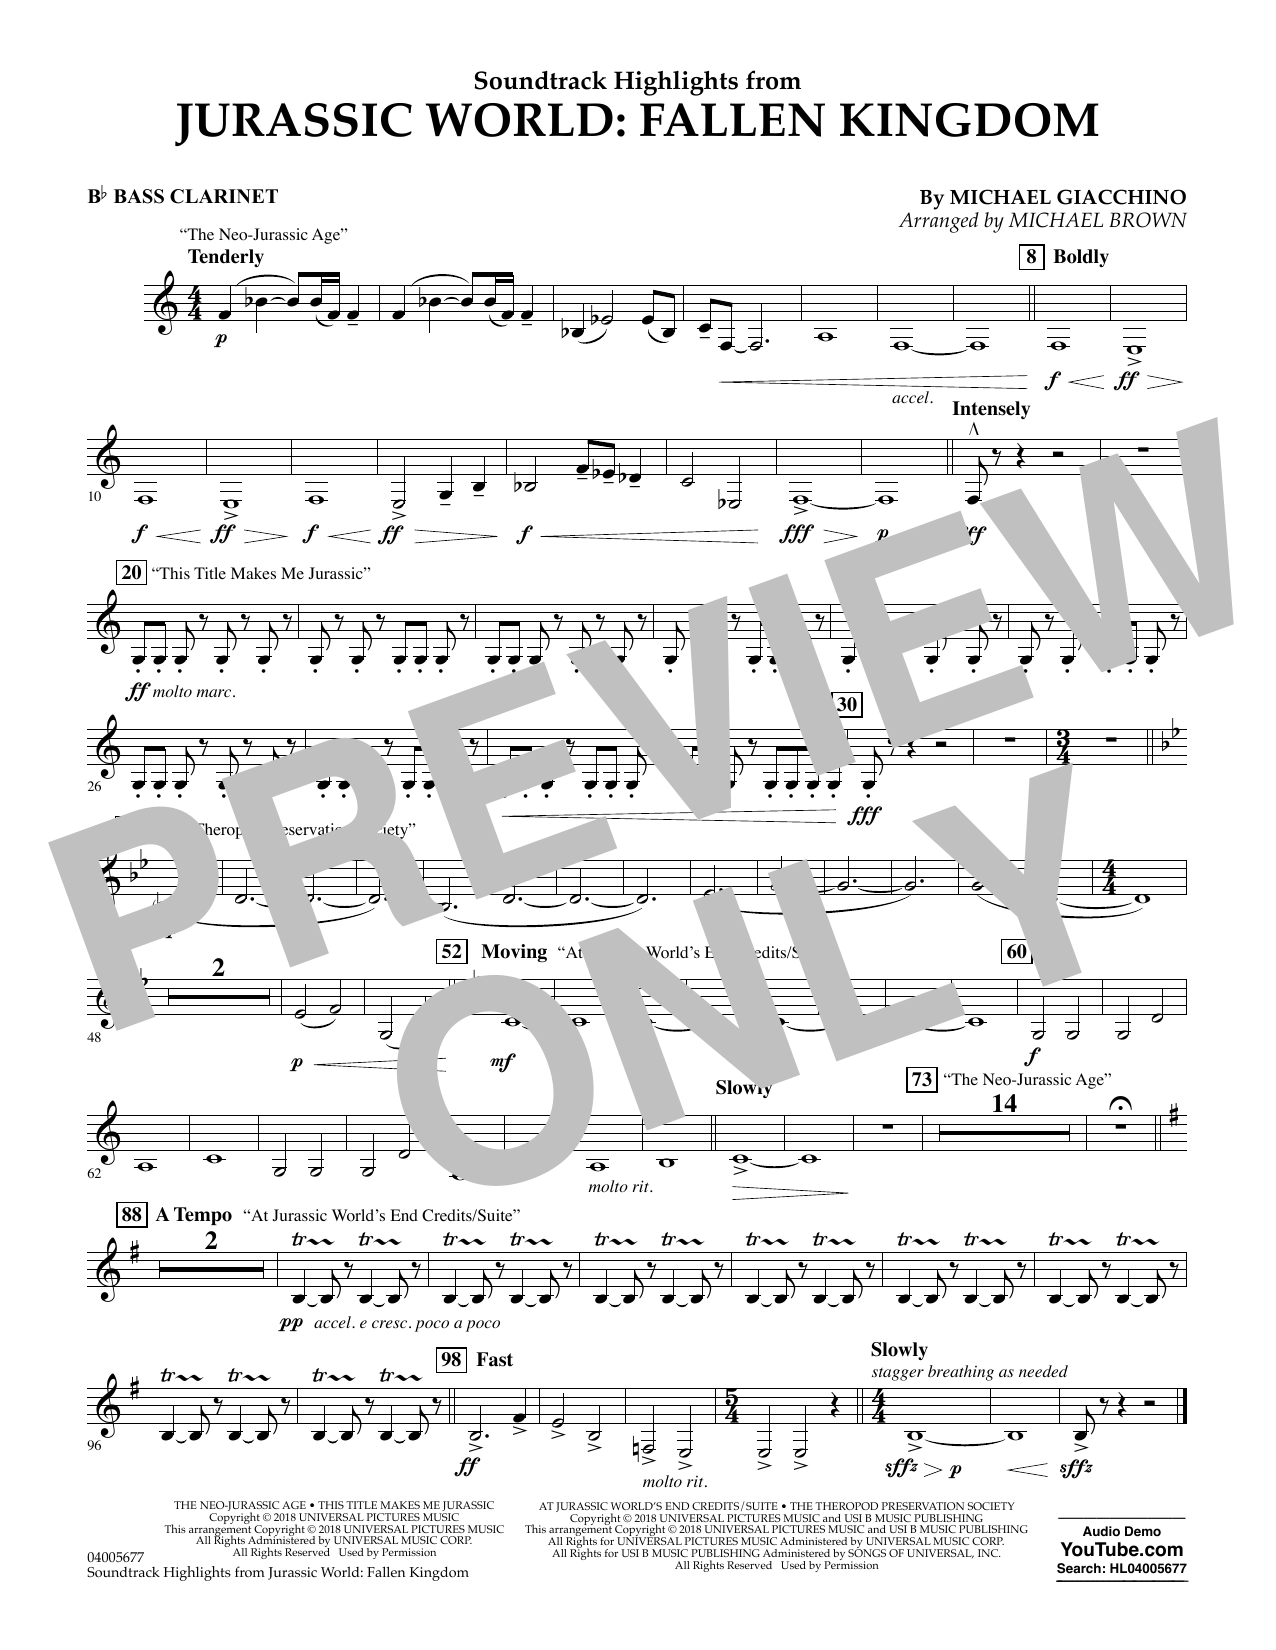 Michael Giacchino Highlights from Jurassic World: Fallen Kingdom (arr. Michael Brown) - Bb Bass Clarinet sheet music preview music notes and score for Concert Band including 1 page(s)